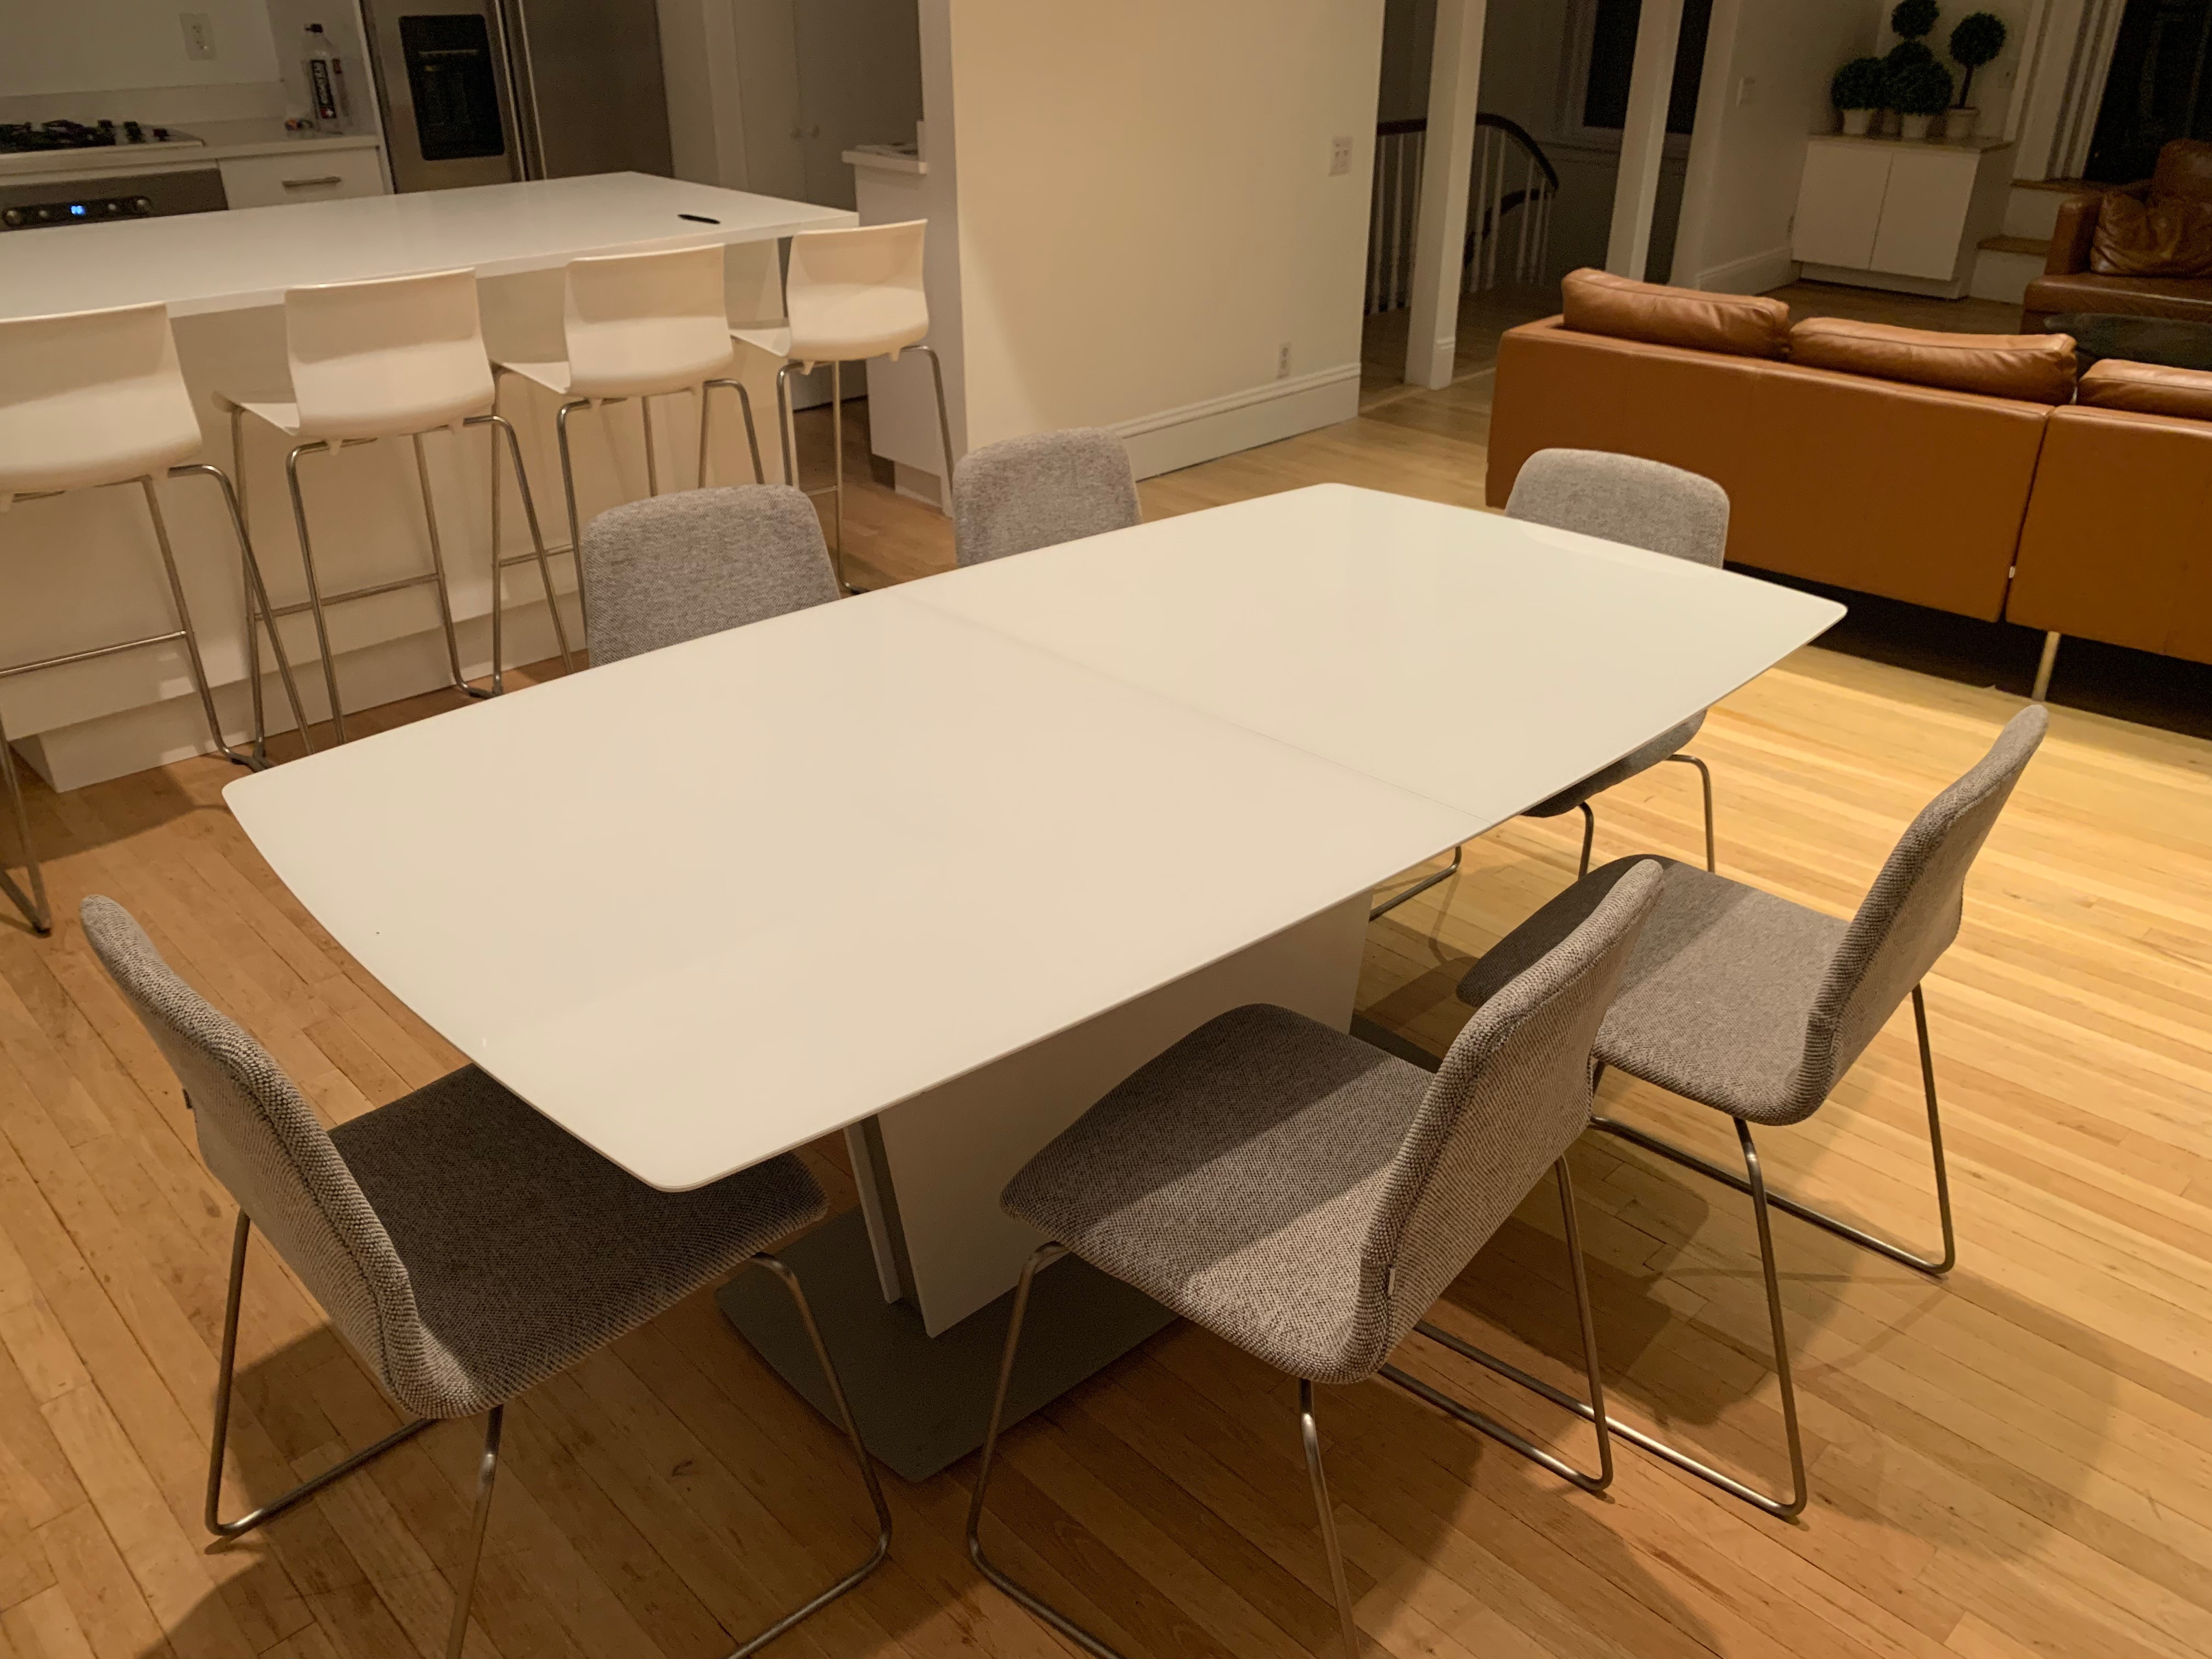 BoConcept Table w/ Supplementary Table Top & 6 Chairs